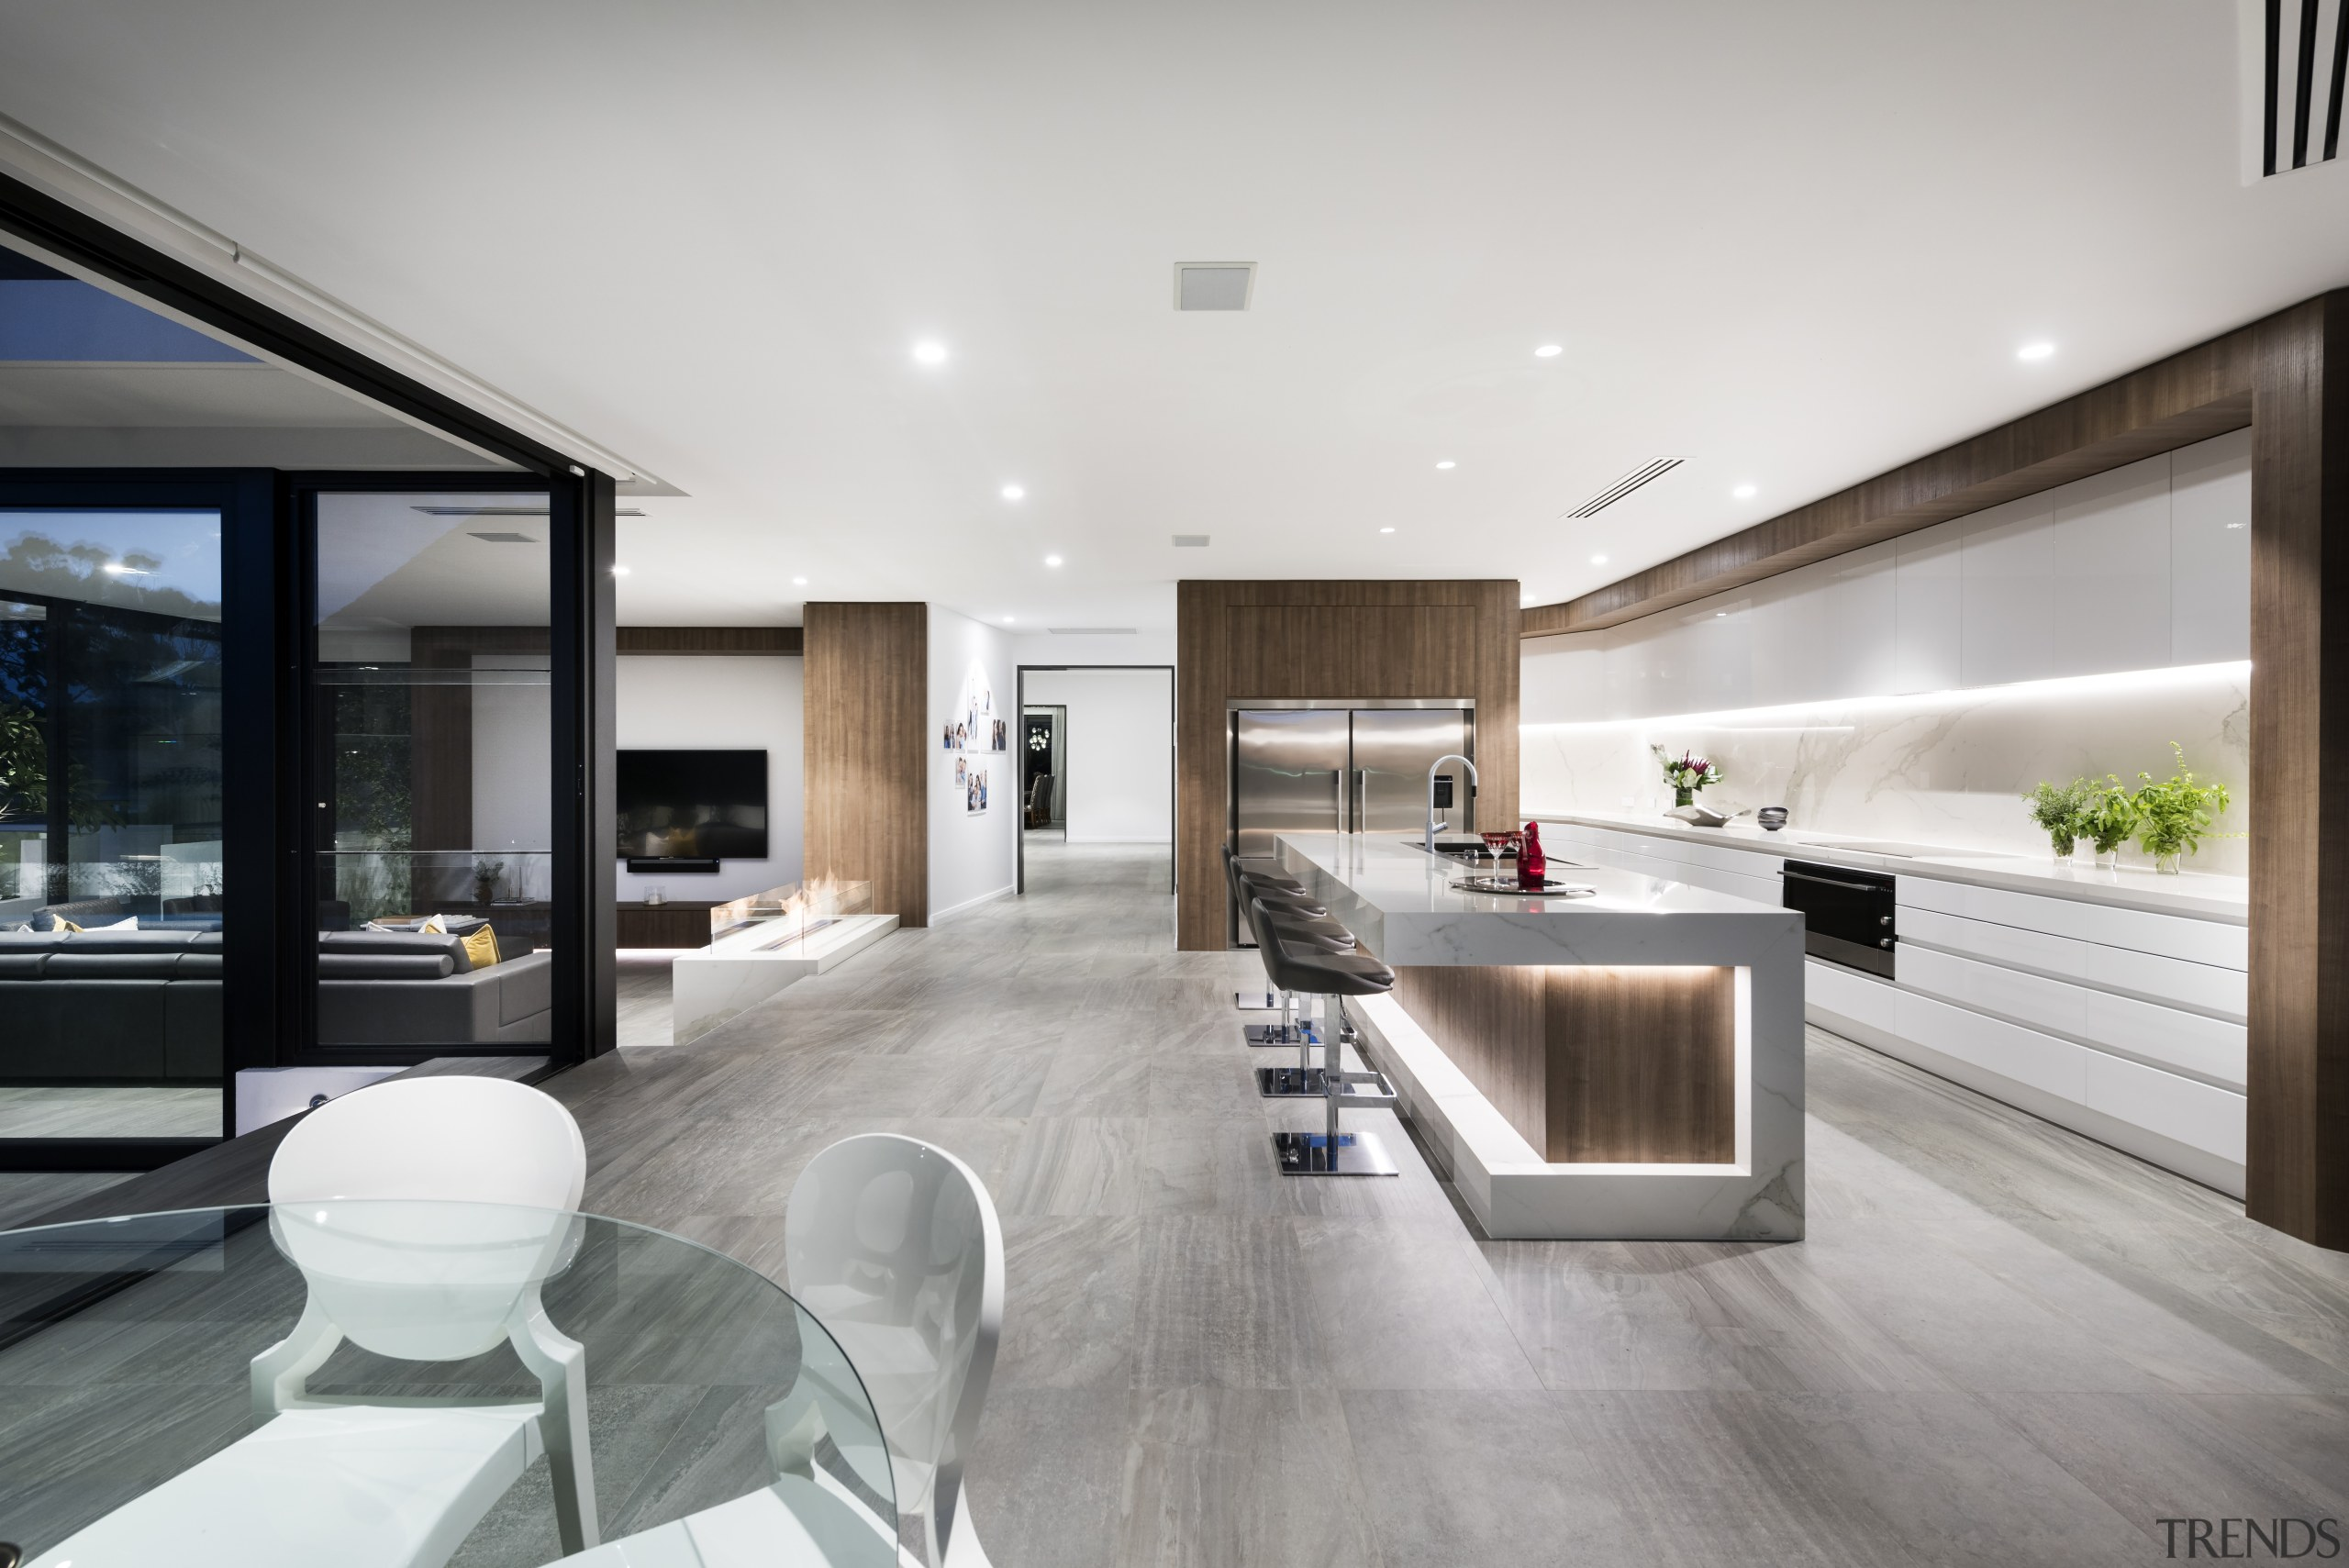 This two-tone kitchen with its natural-look surfaces and architecture, floor, house, interior design, kitchen, living room, real estate, gray